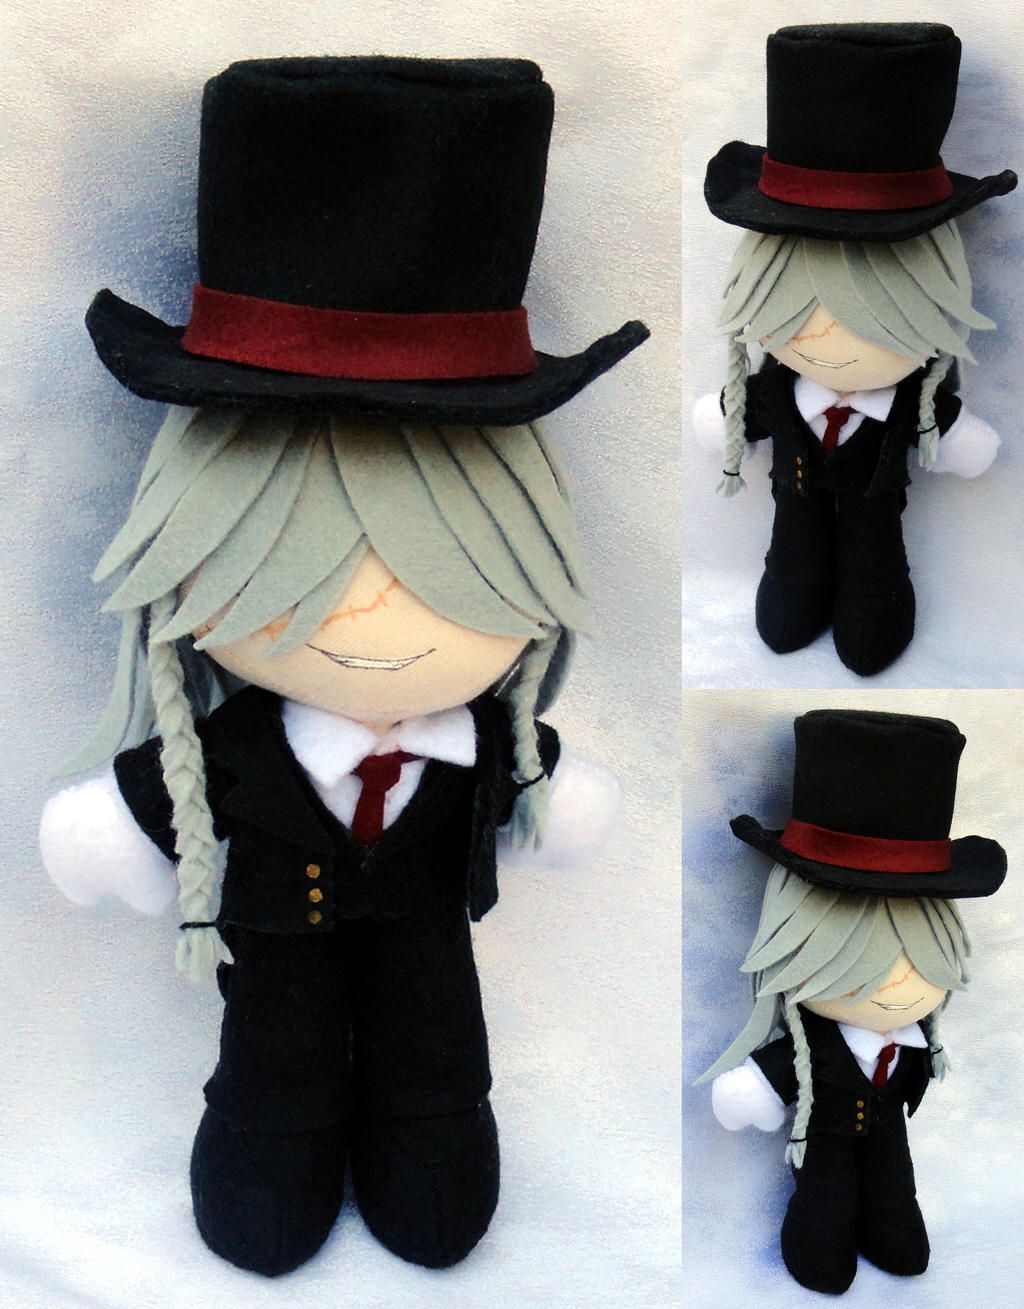 Mini Plushie, Weston Undertaker by ThePlushieLady